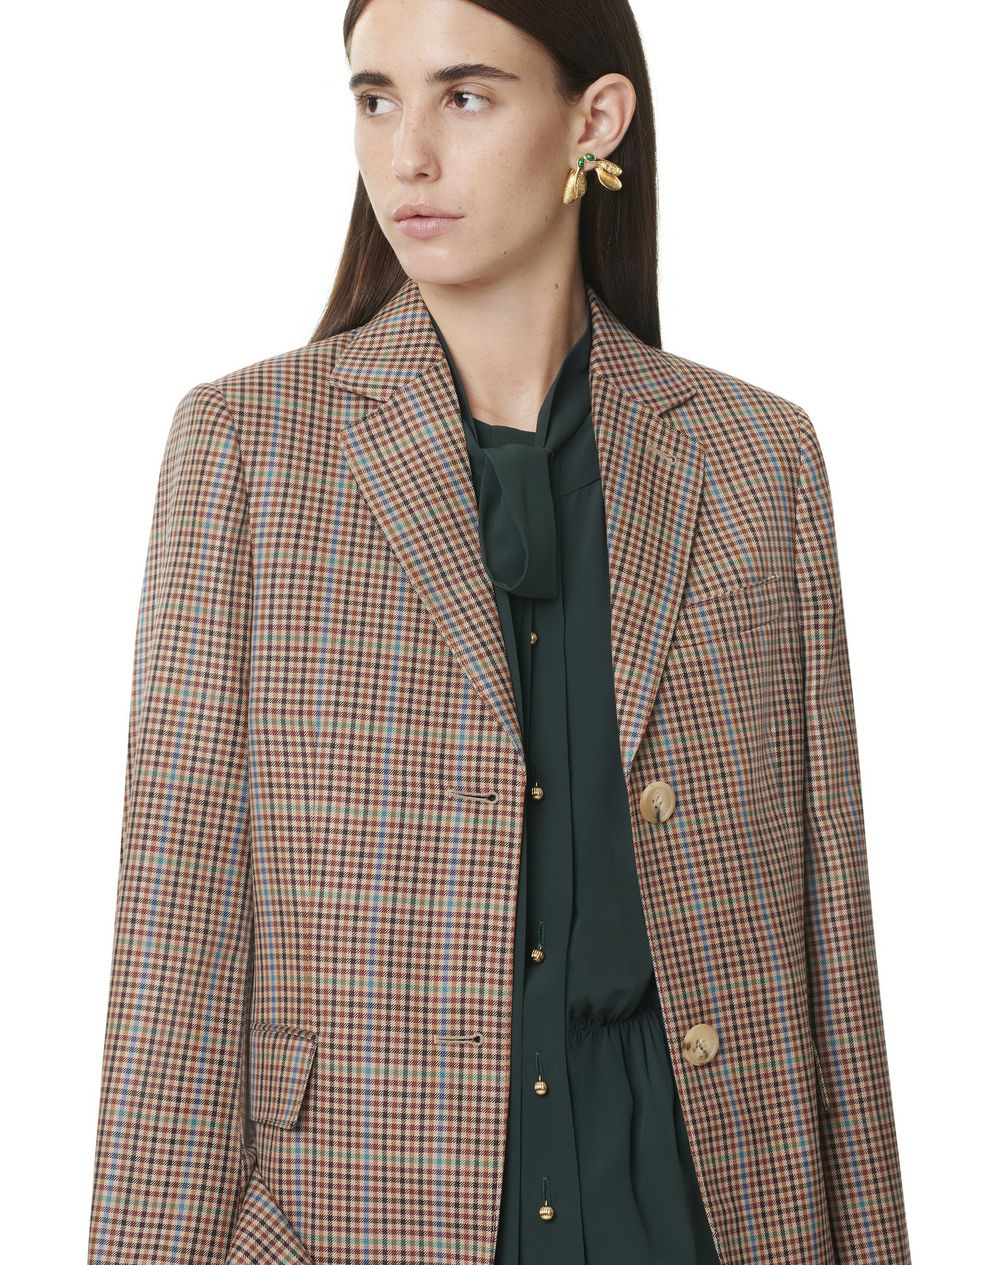 FLARED-SLEEVE TAILORED JACKET - Lanvin